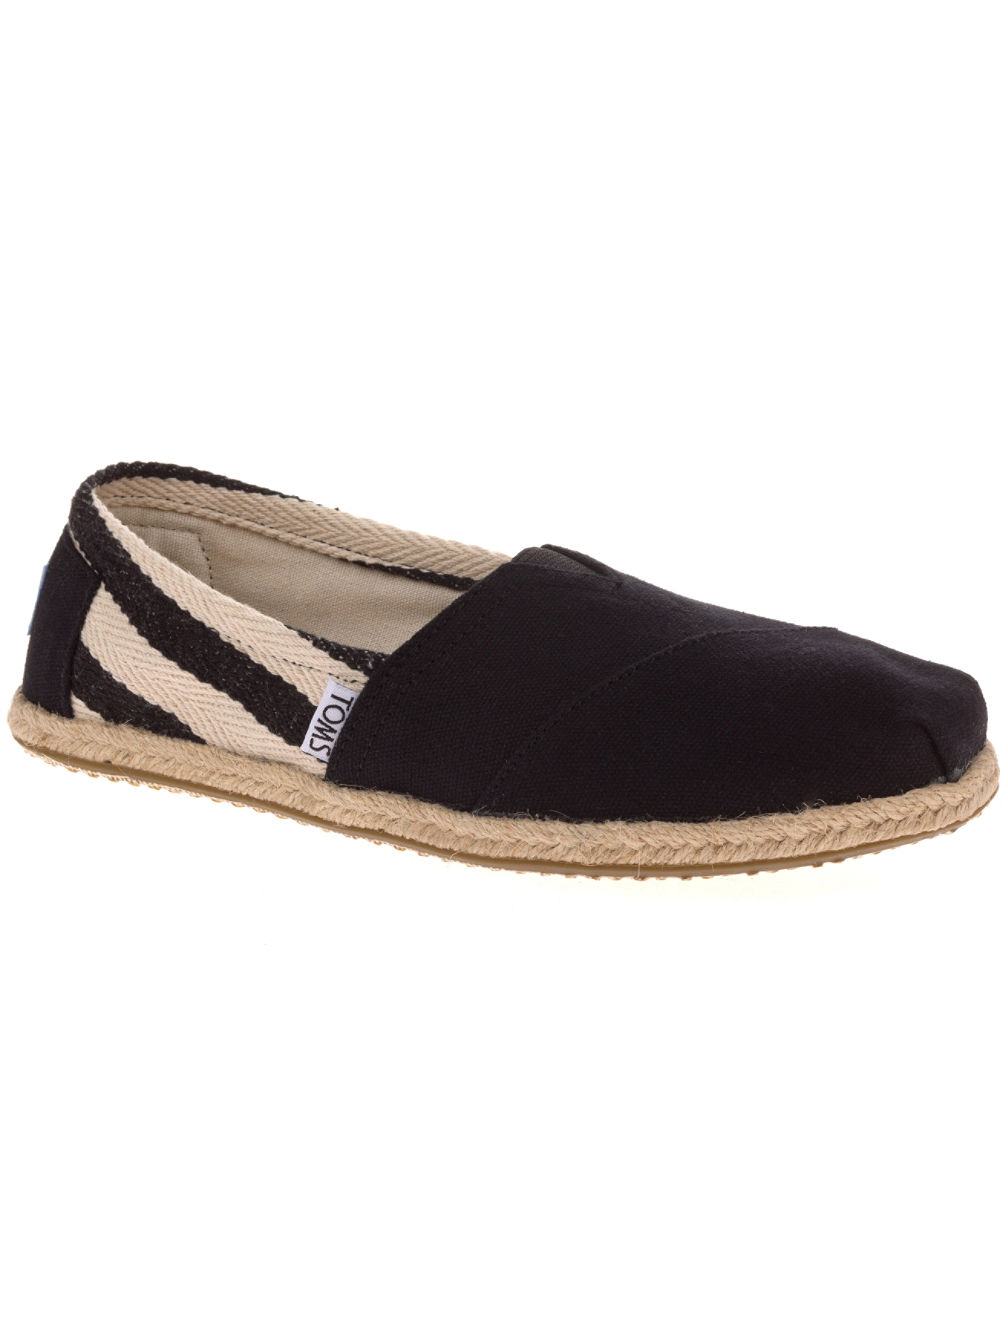 University Slippers Women